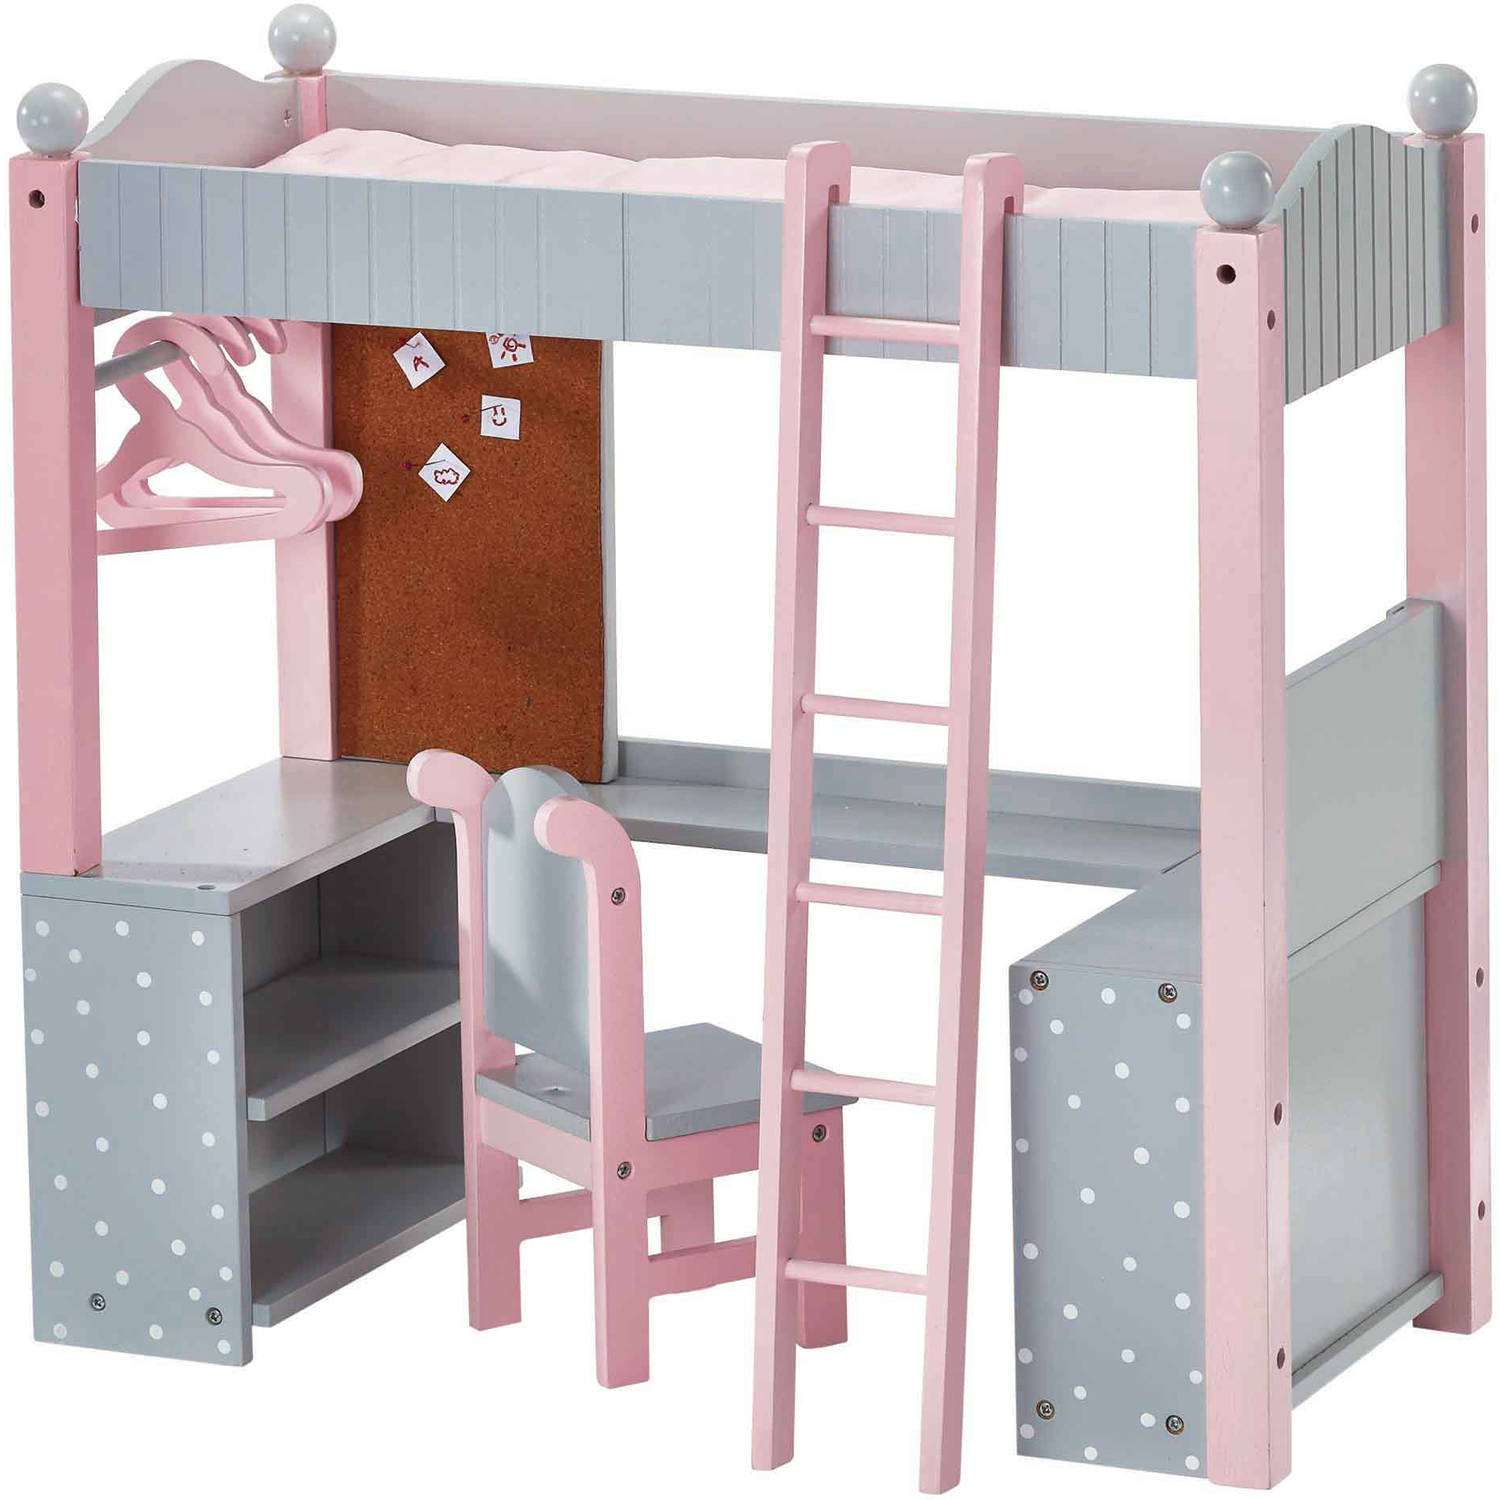 "Olivia's Little World - Polka Dots Princess 18"" Doll College Dorm Double Bunk Desk - Grey"